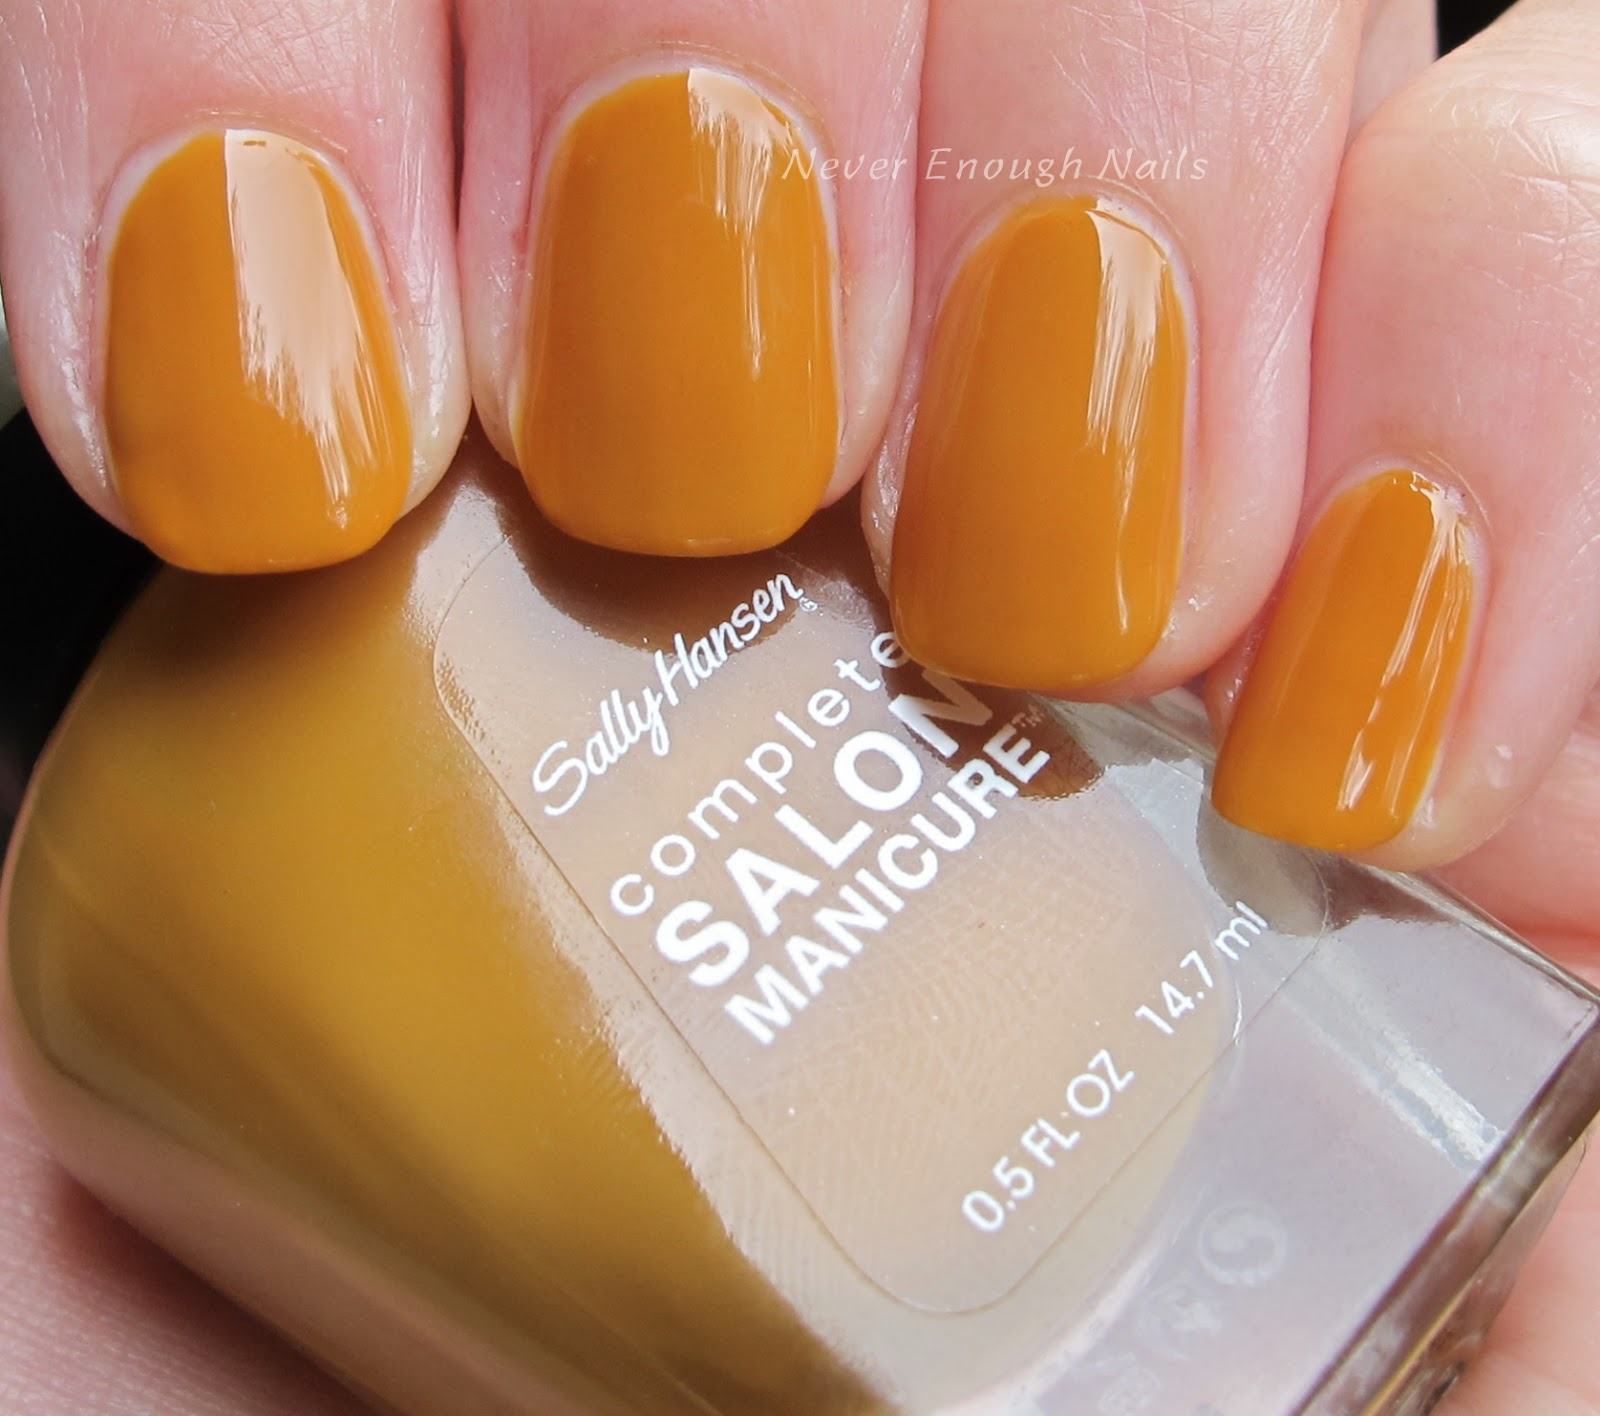 Never Enough Nails Two More Sally Hansen Designer Shades For Fall 2015